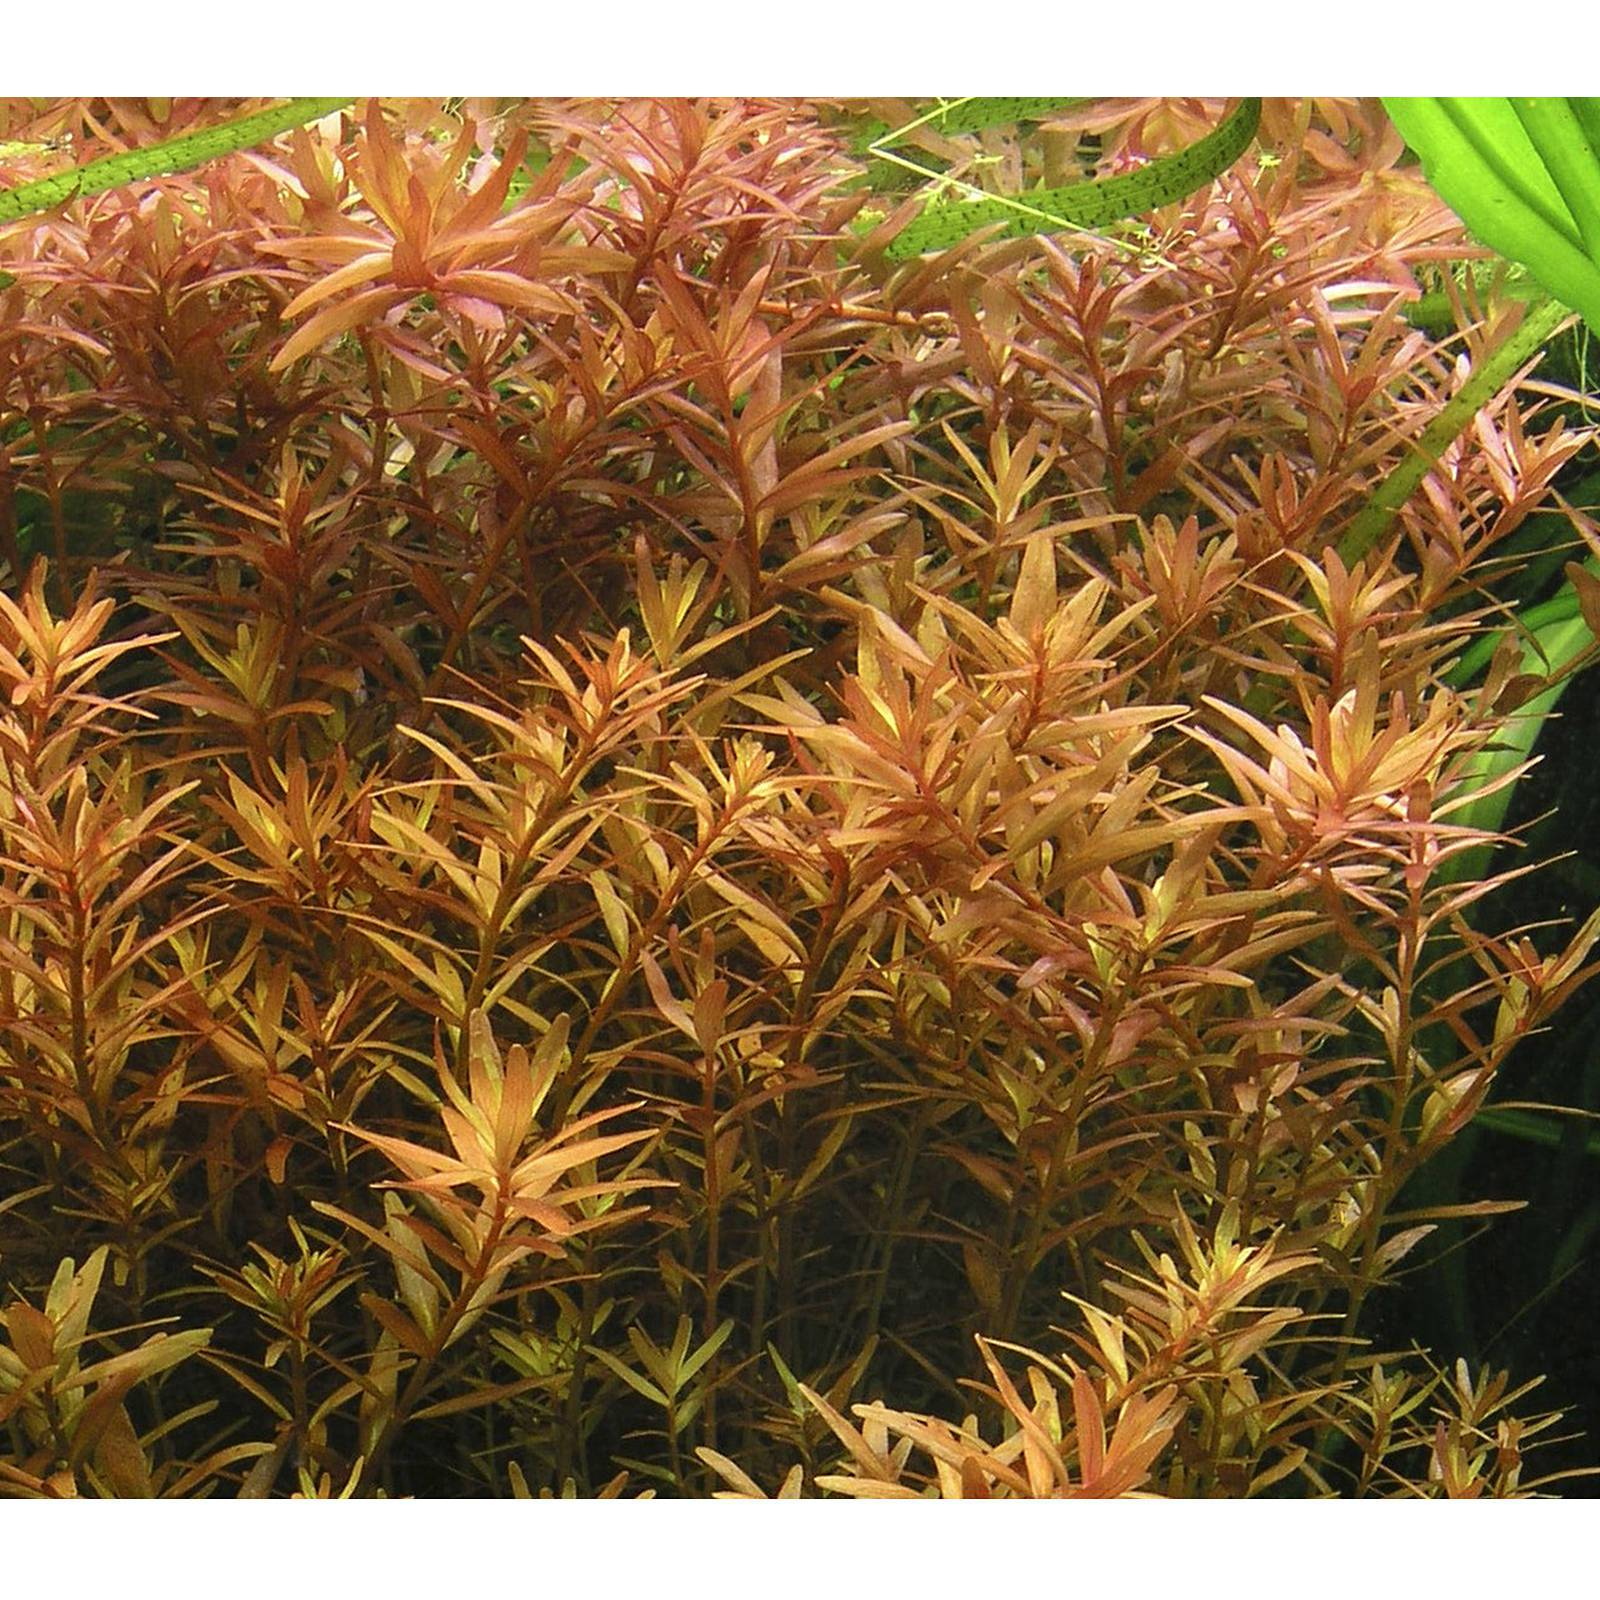 Rotala rotundifolia submers